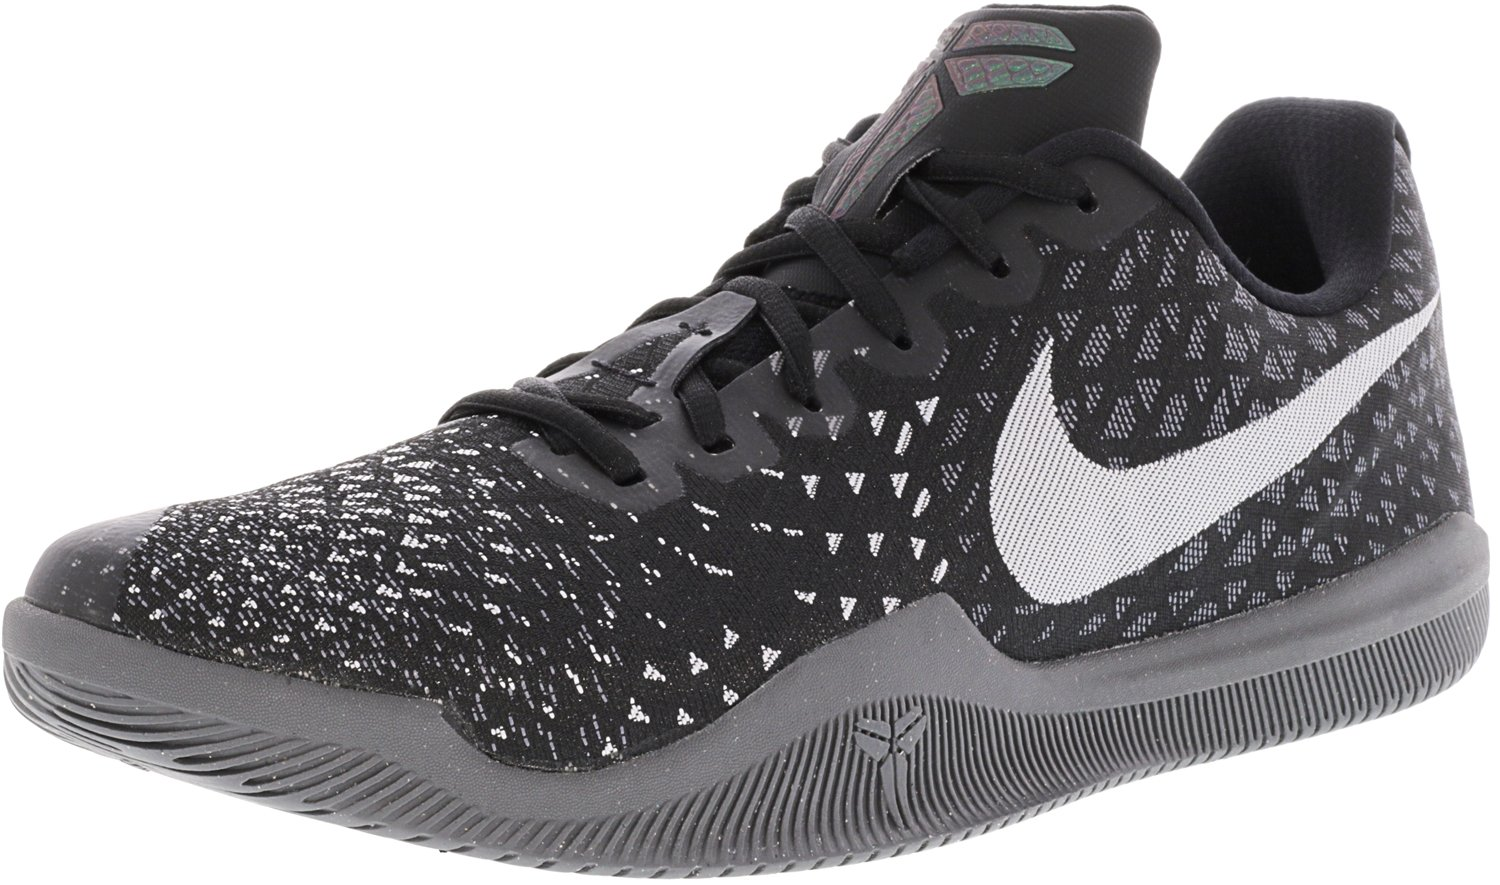 15d1a7fba91a02 Galleon - NIKE Kobe Mamba Instinct Mens Basketball Shoes (11.5 D(M) US)